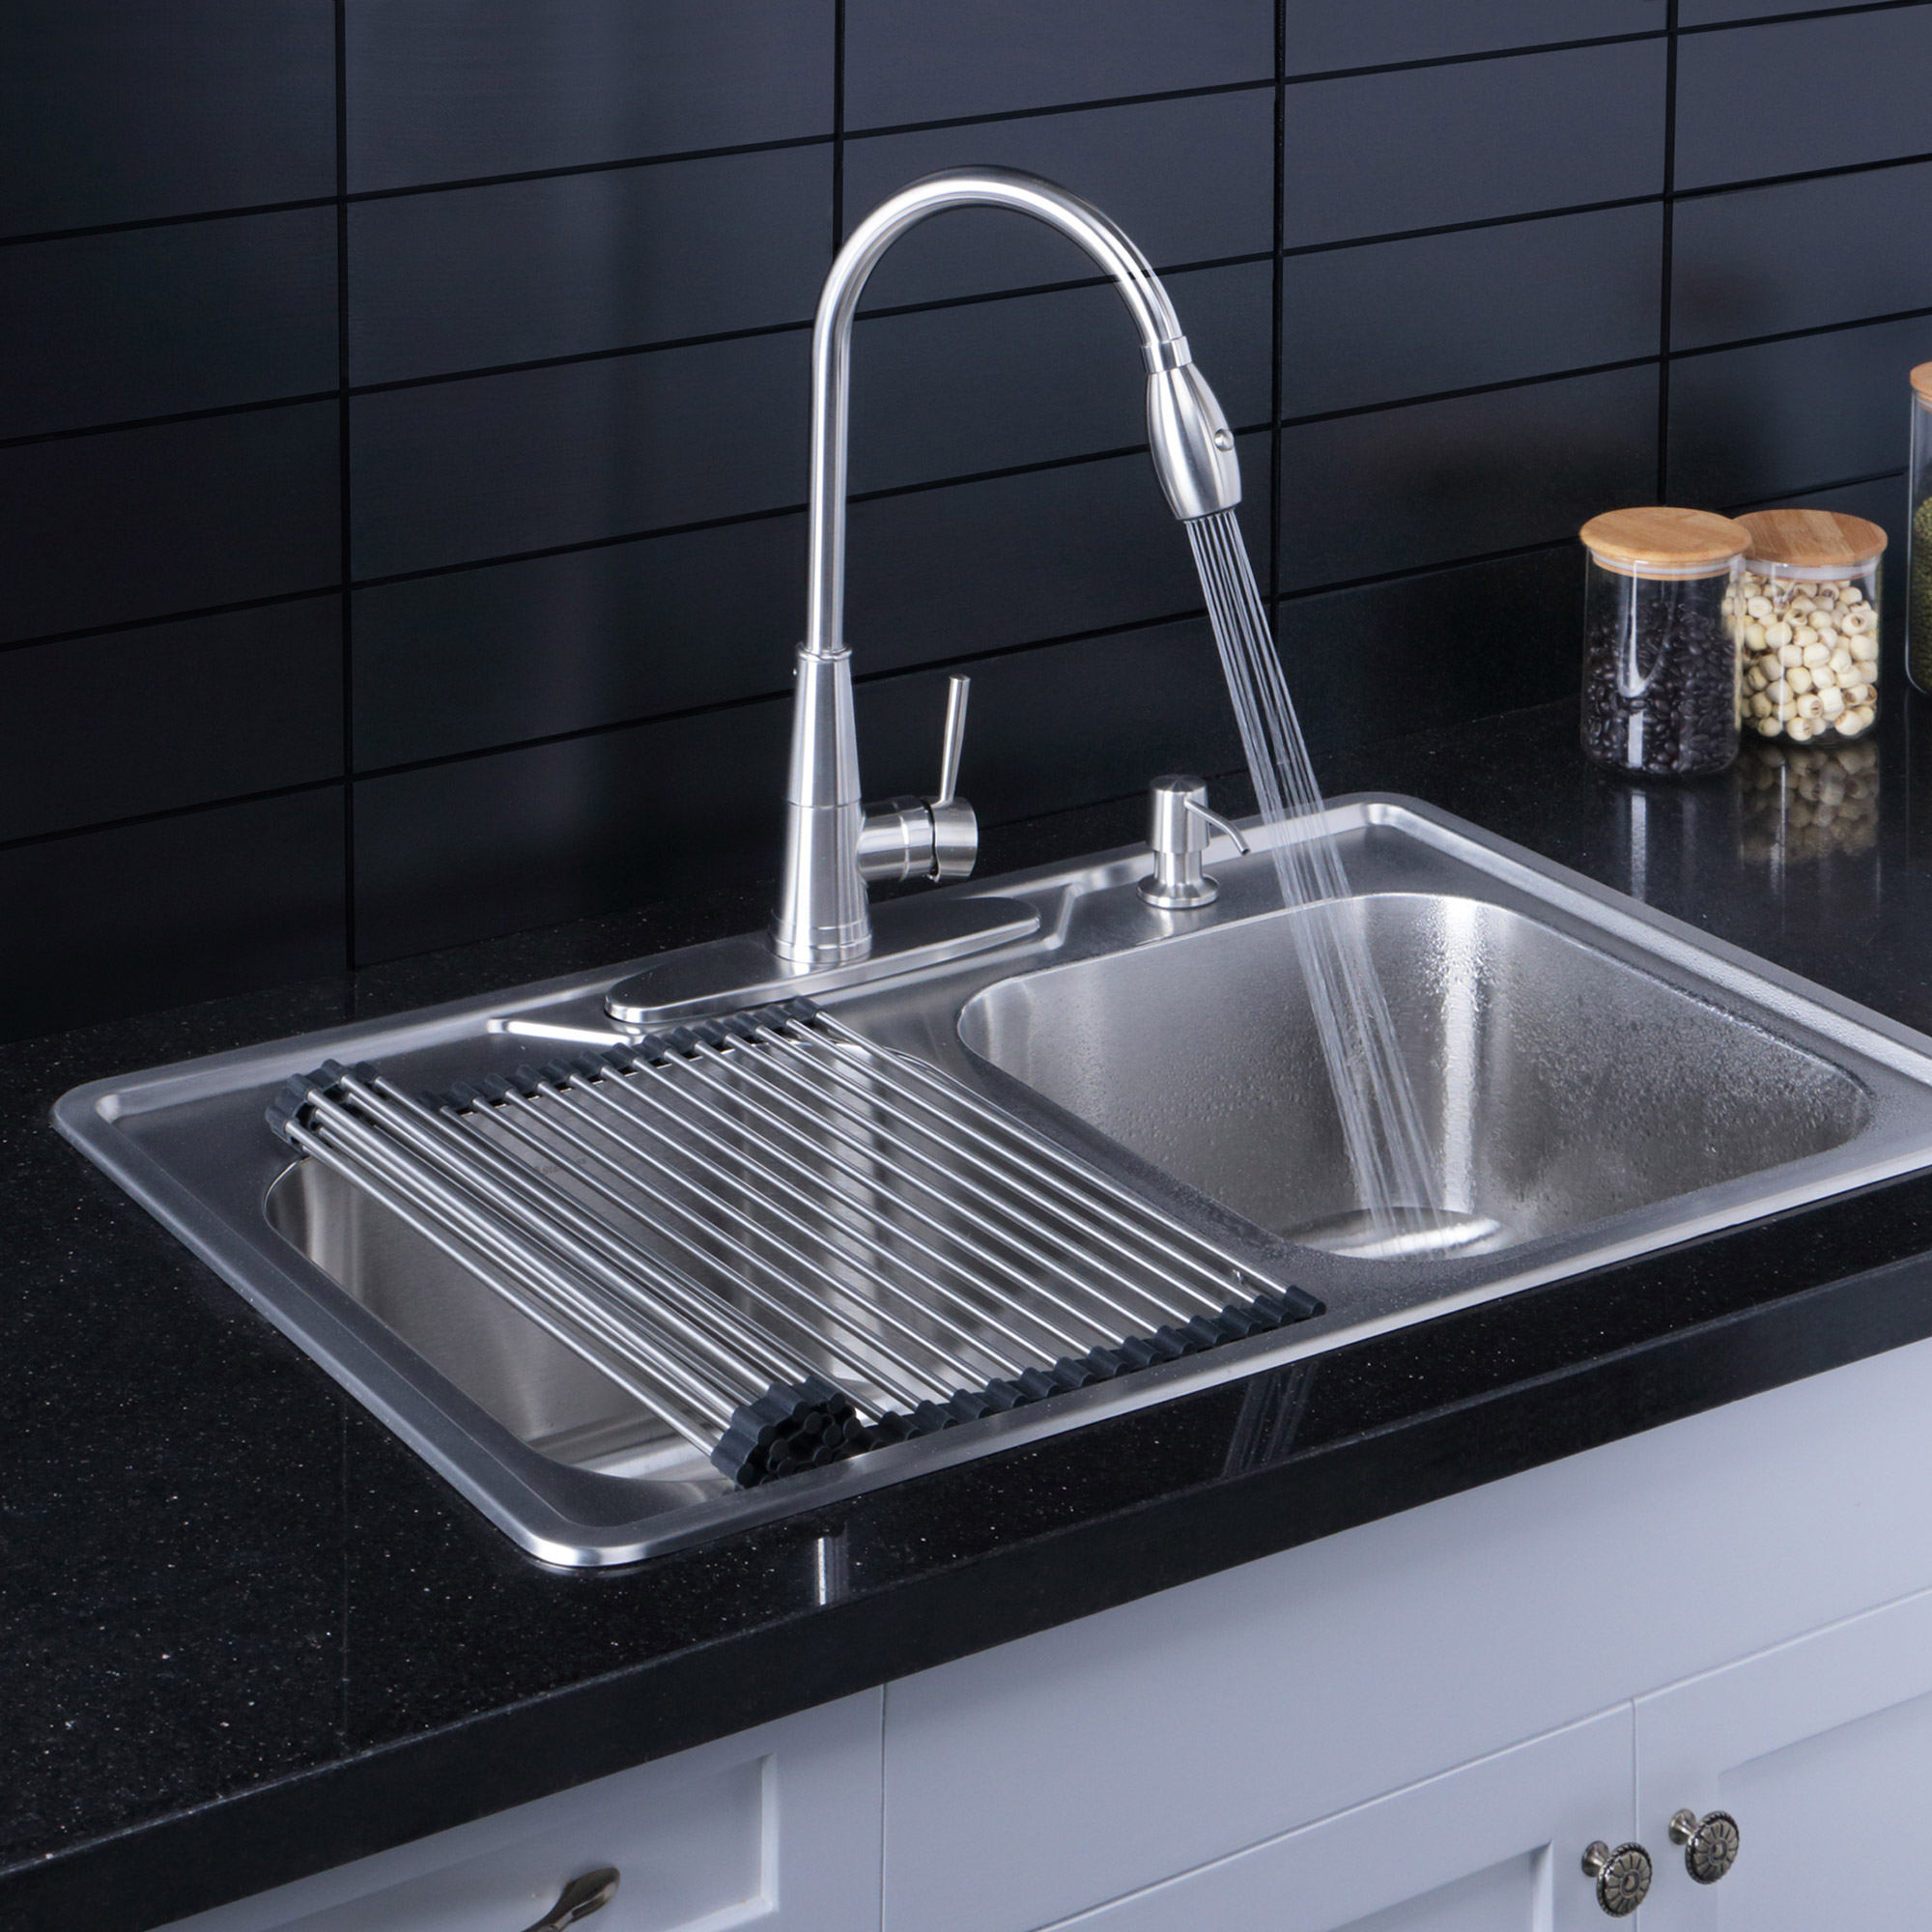 Afa Stainless 33 Handmade Single Bowl Kitchen Sink Faucet Combo